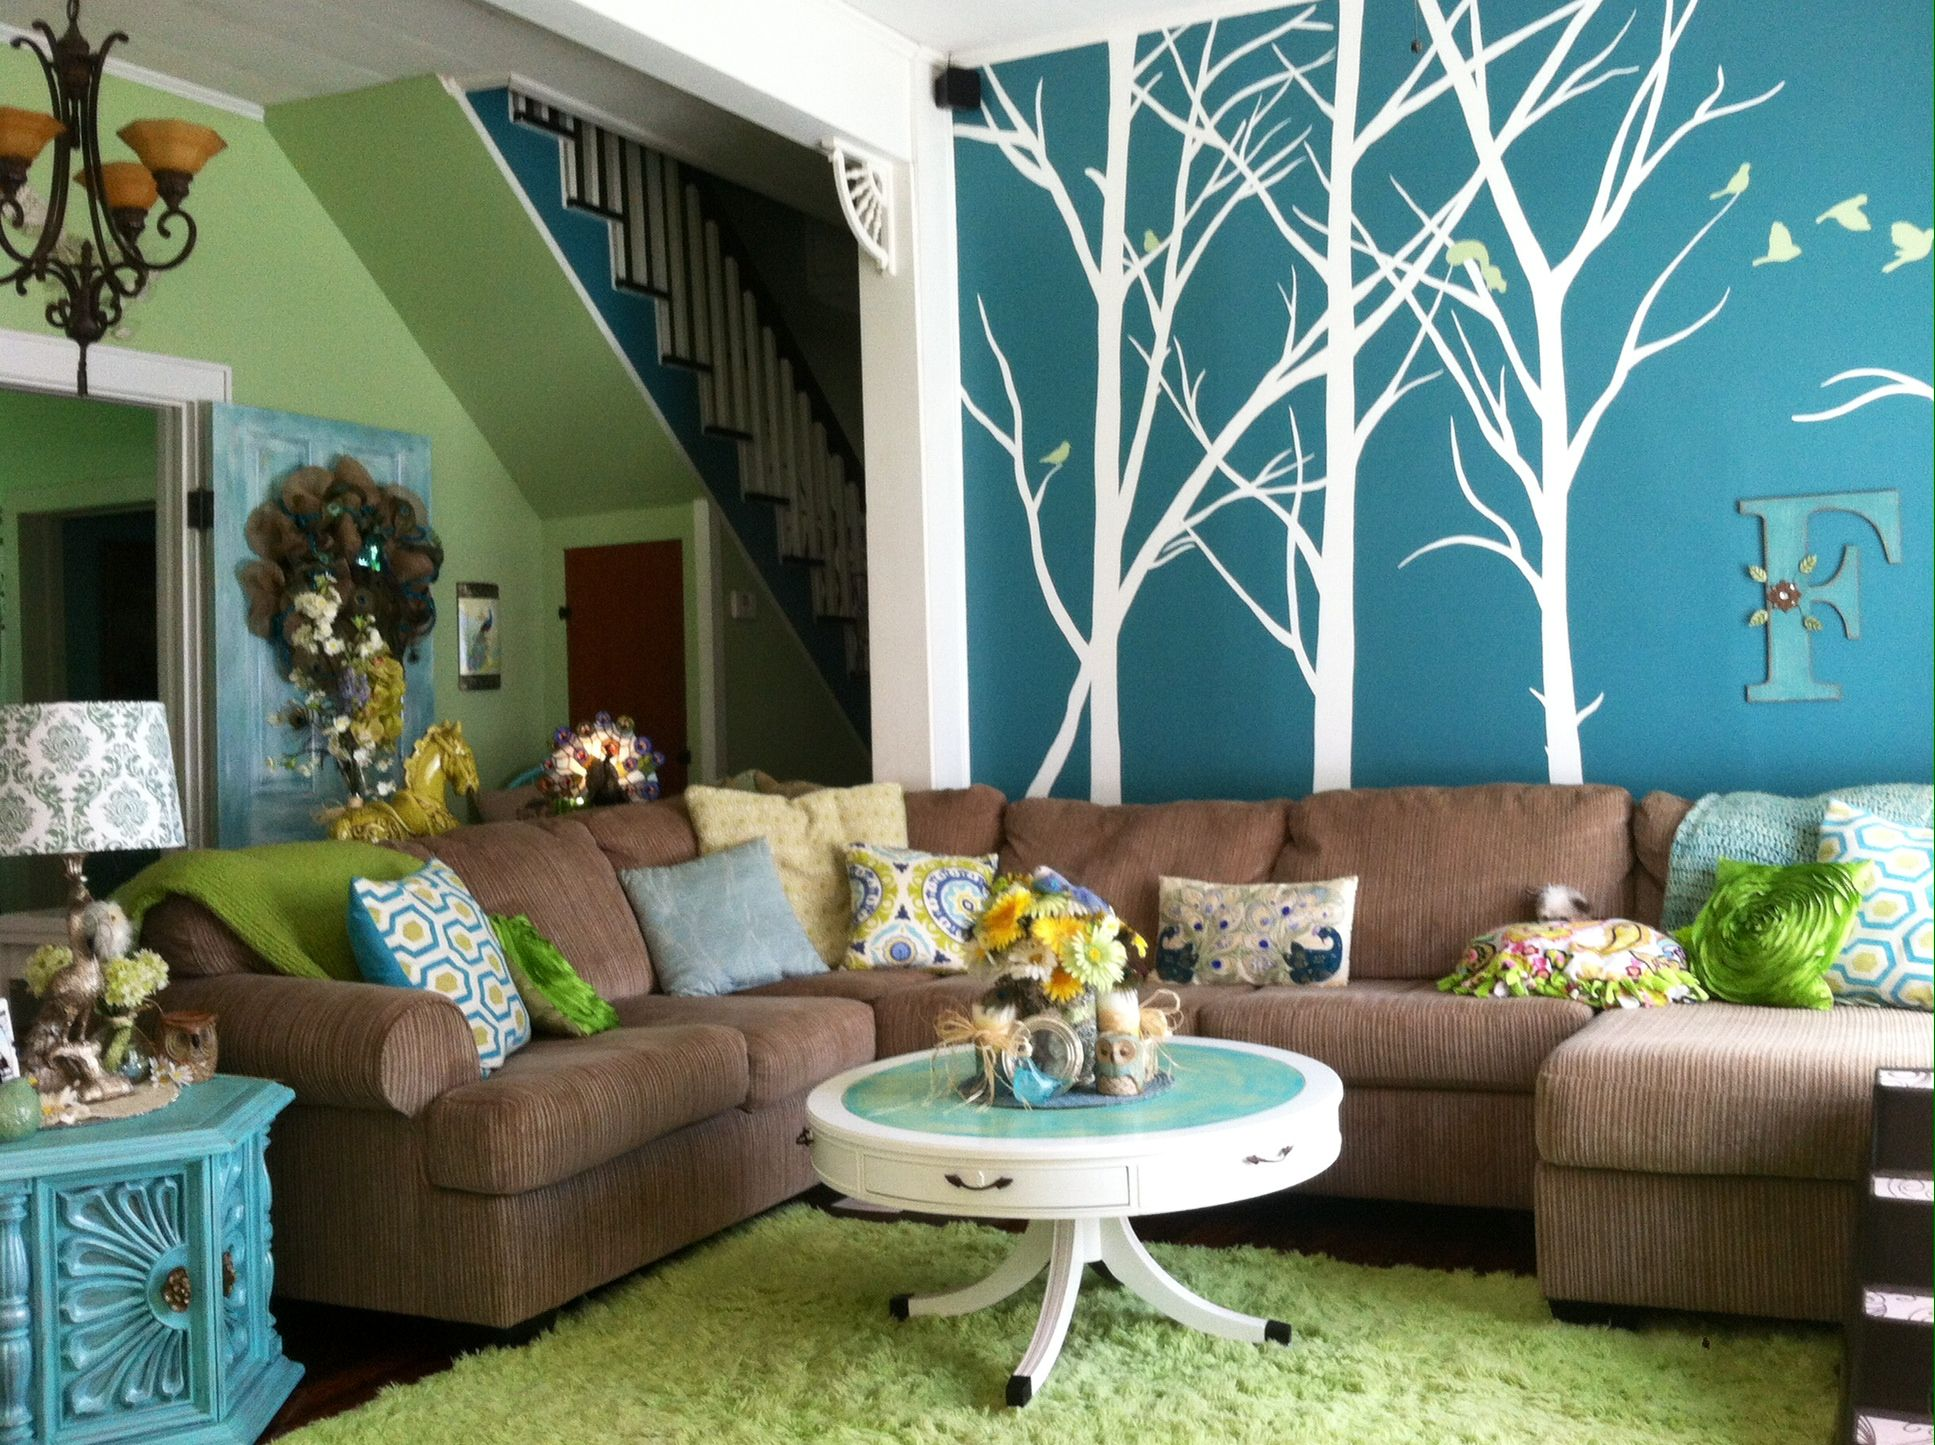 892 The Paradigm Living Room Set Grey: Peacock Inspired Living Area. Valspar Paint Colors Quaking